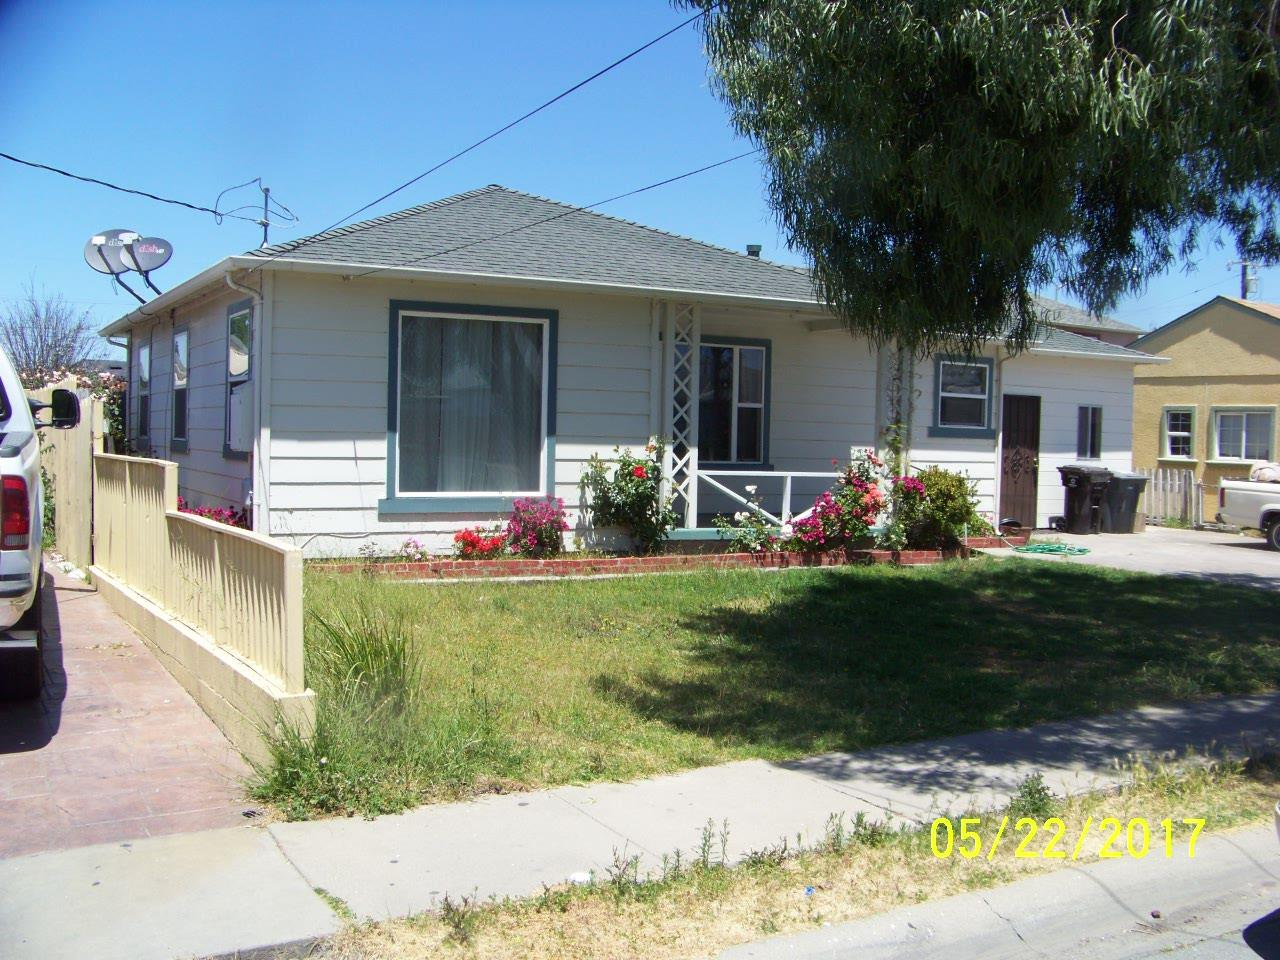 Additional photo for property listing at 917 Beech Street  Salinas, California 93905 United States